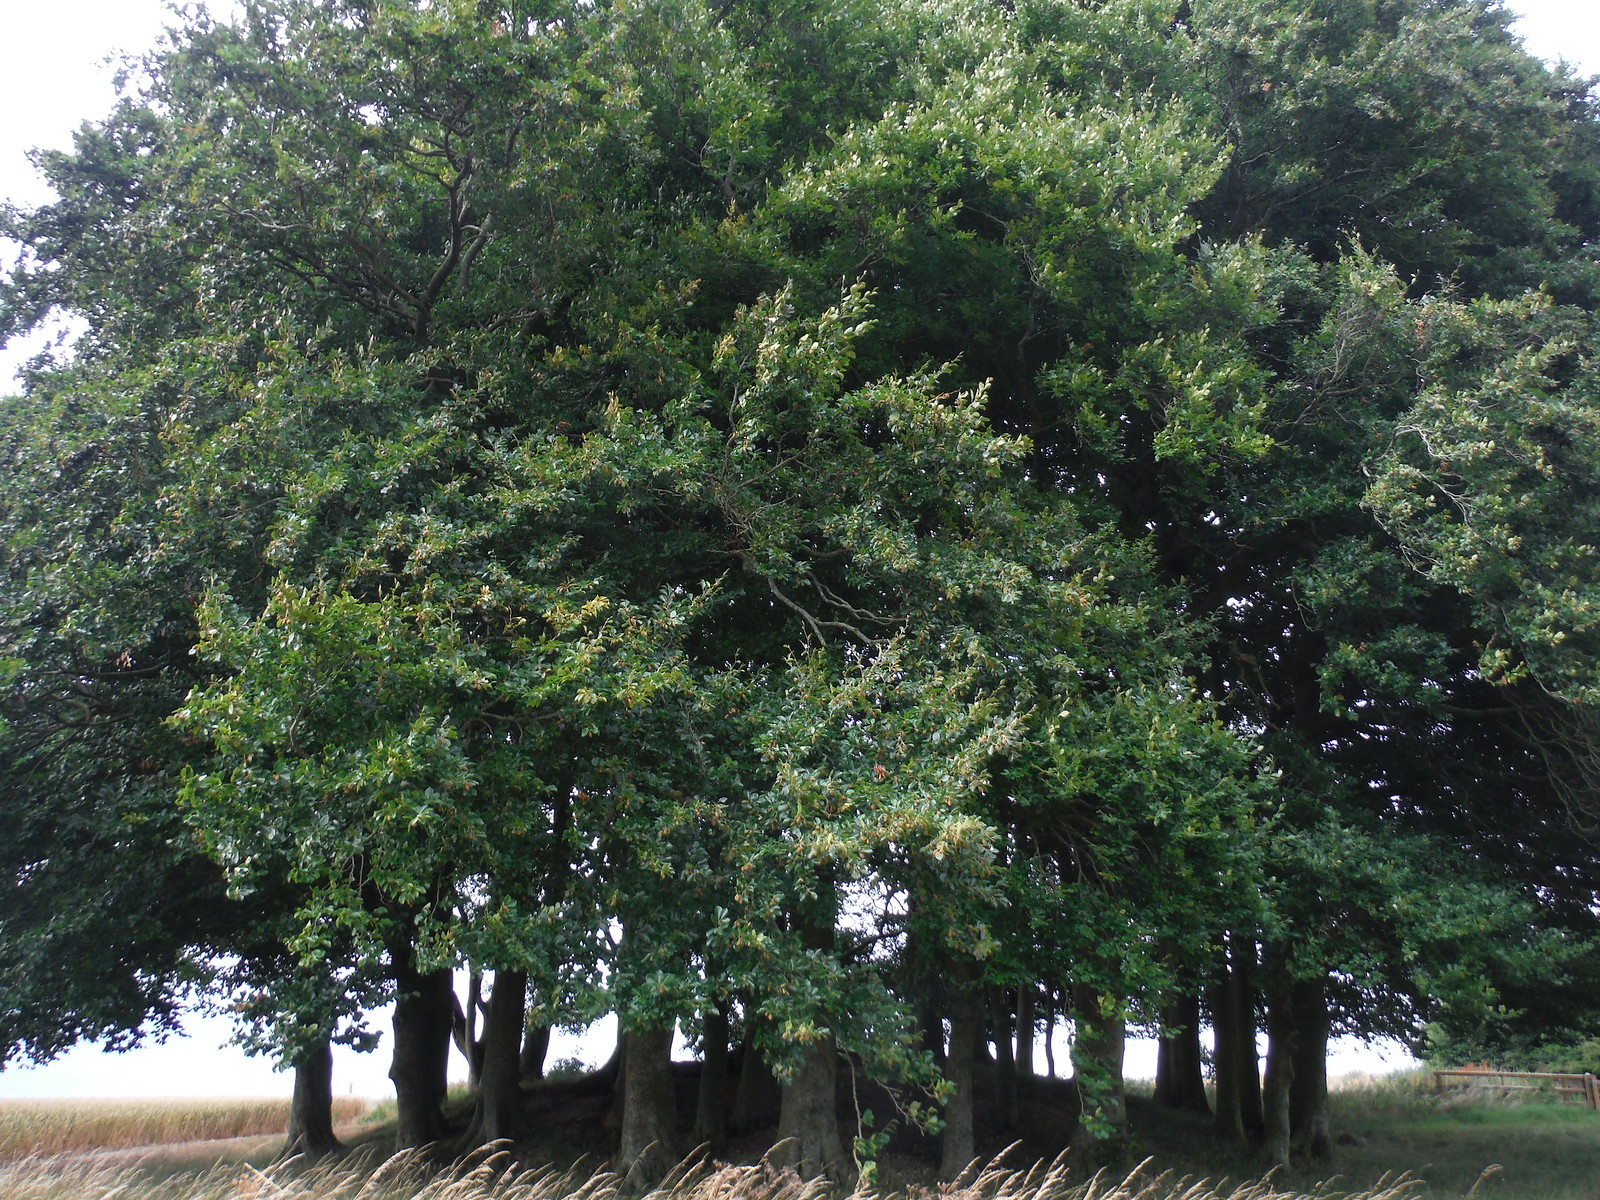 'Hedgehog': beeches on barrow, near The Sanctuary SWC Walk 255 Pewsey or Marlborough Circular via Avebury